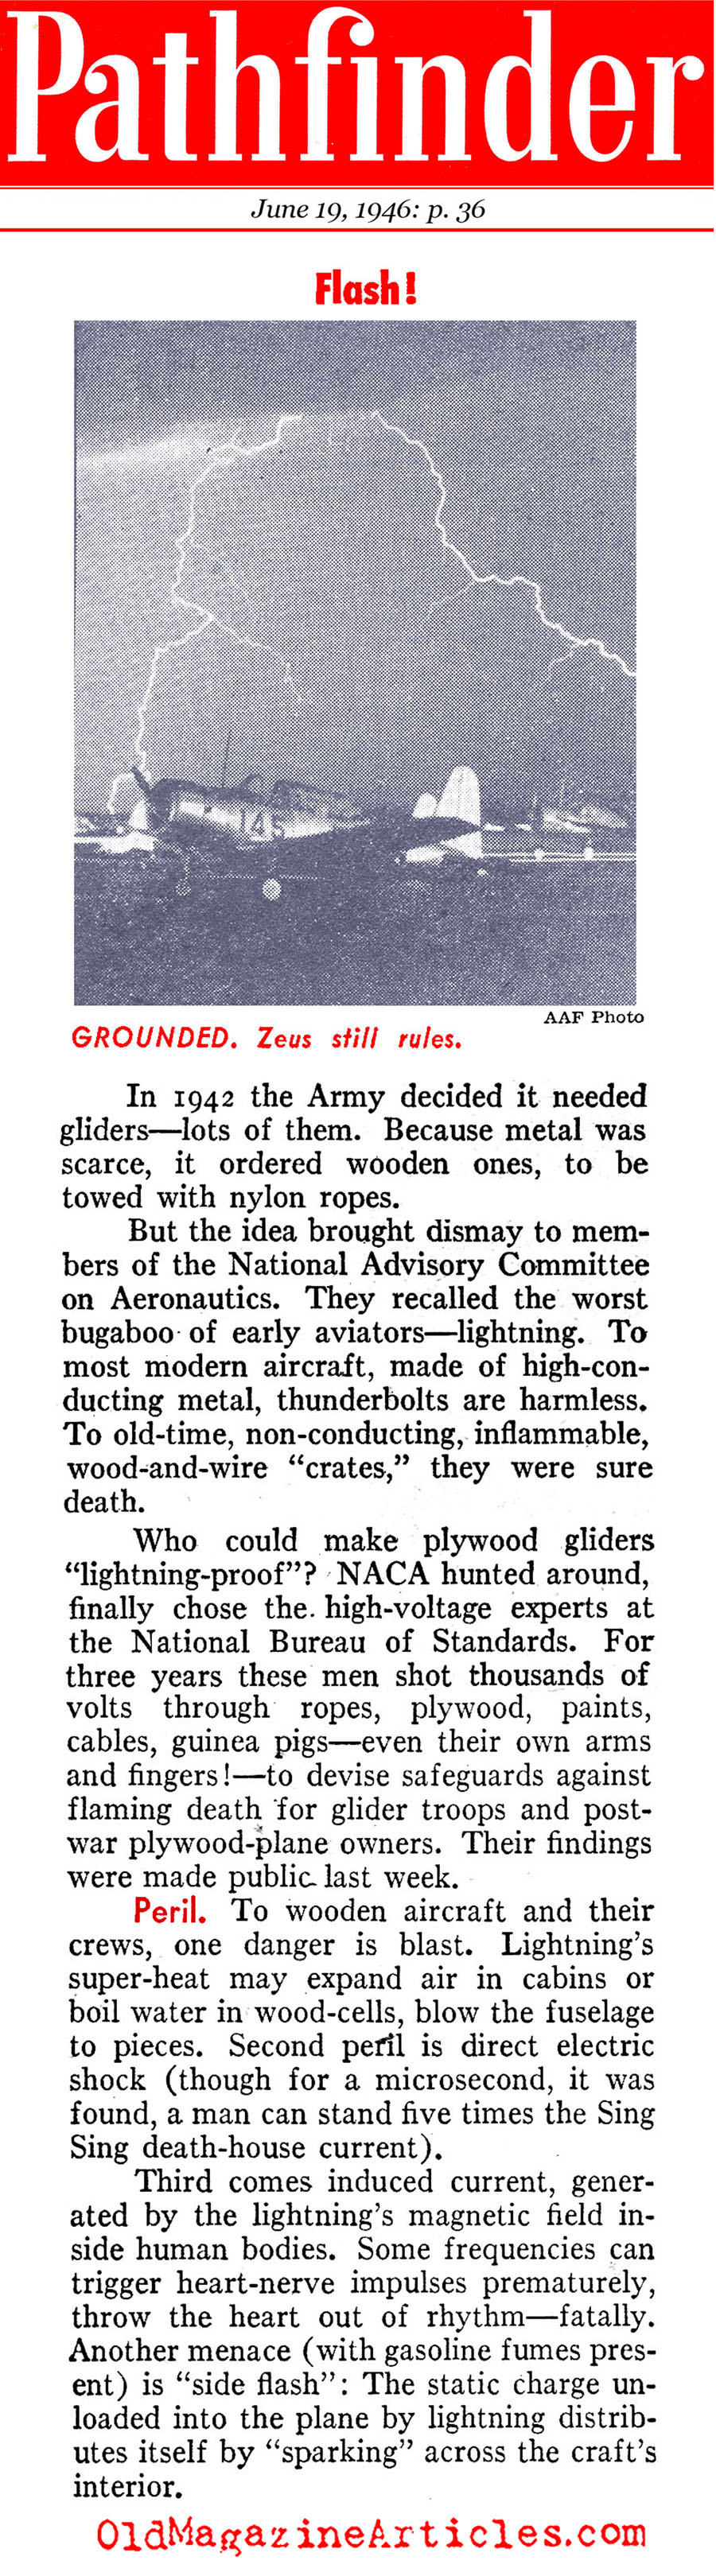 Dealing with Lightning (Pathfinder Magazine, 1946)